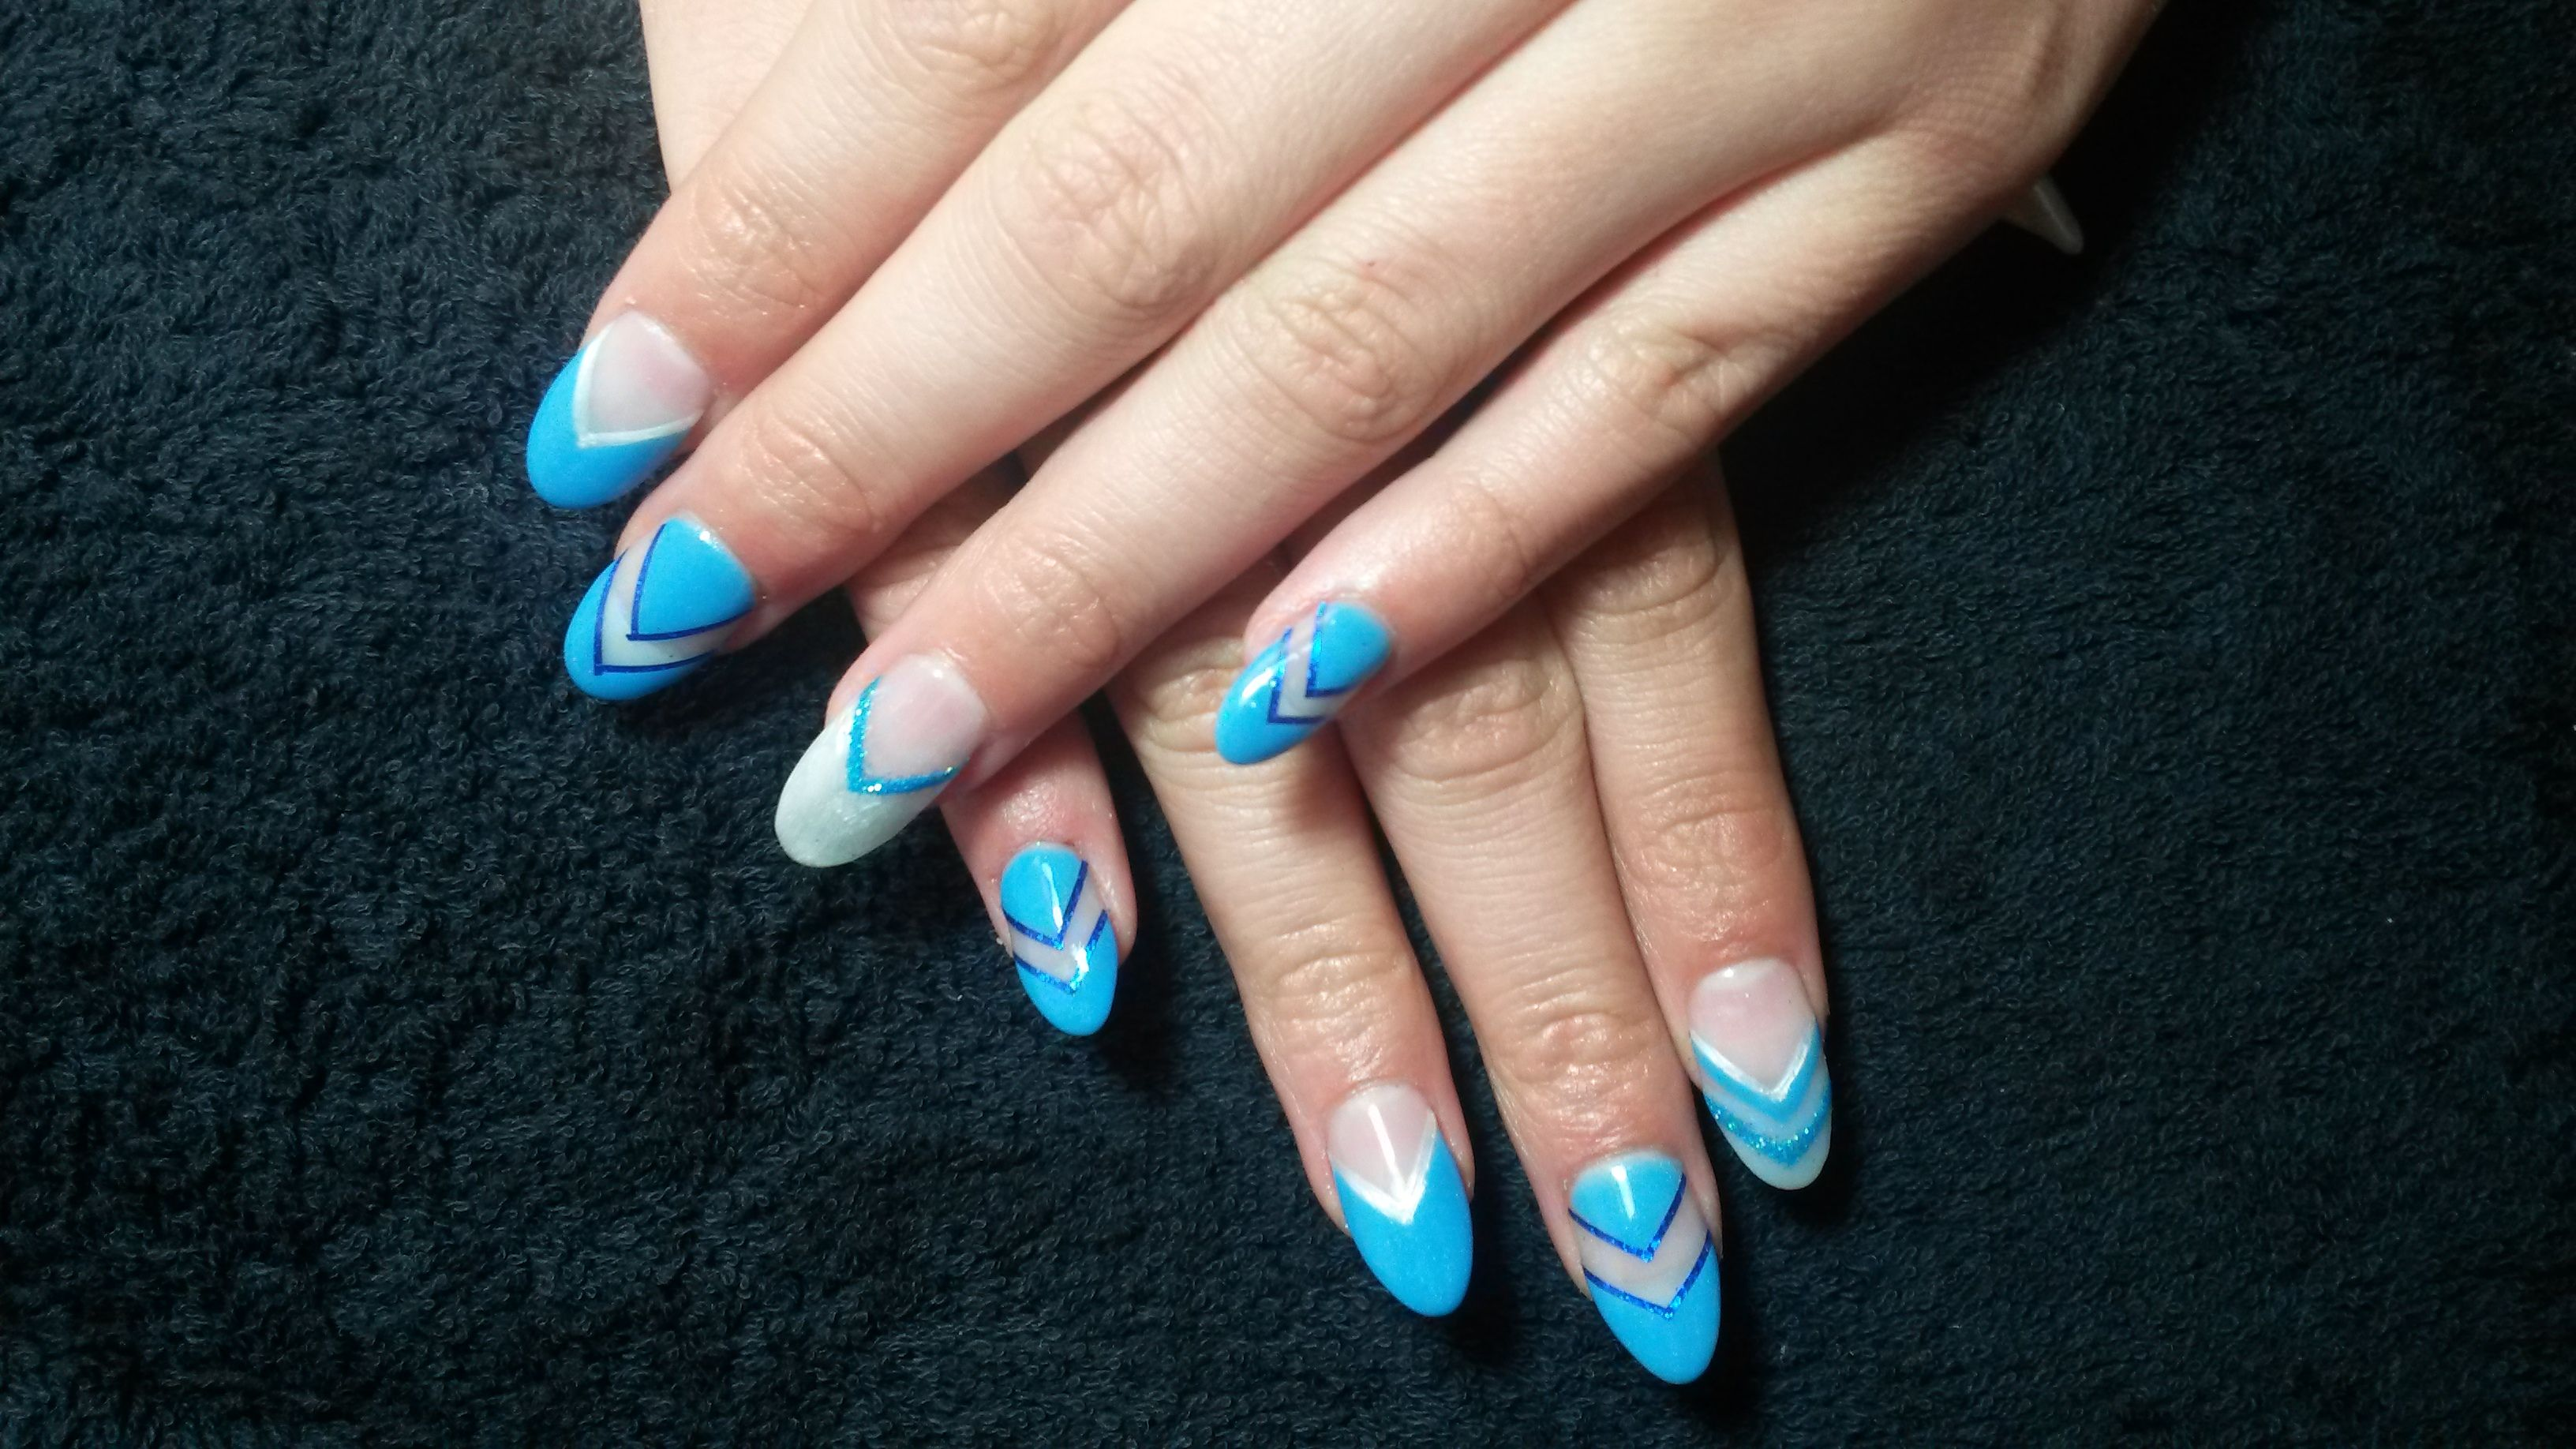 Testa Rossa Beauty East Rand Nail Technician Johannesburg Technician Mobile Technician Manicure Easy Nail Art Easy N Red Nails Gel Acrylic Nails Manicure